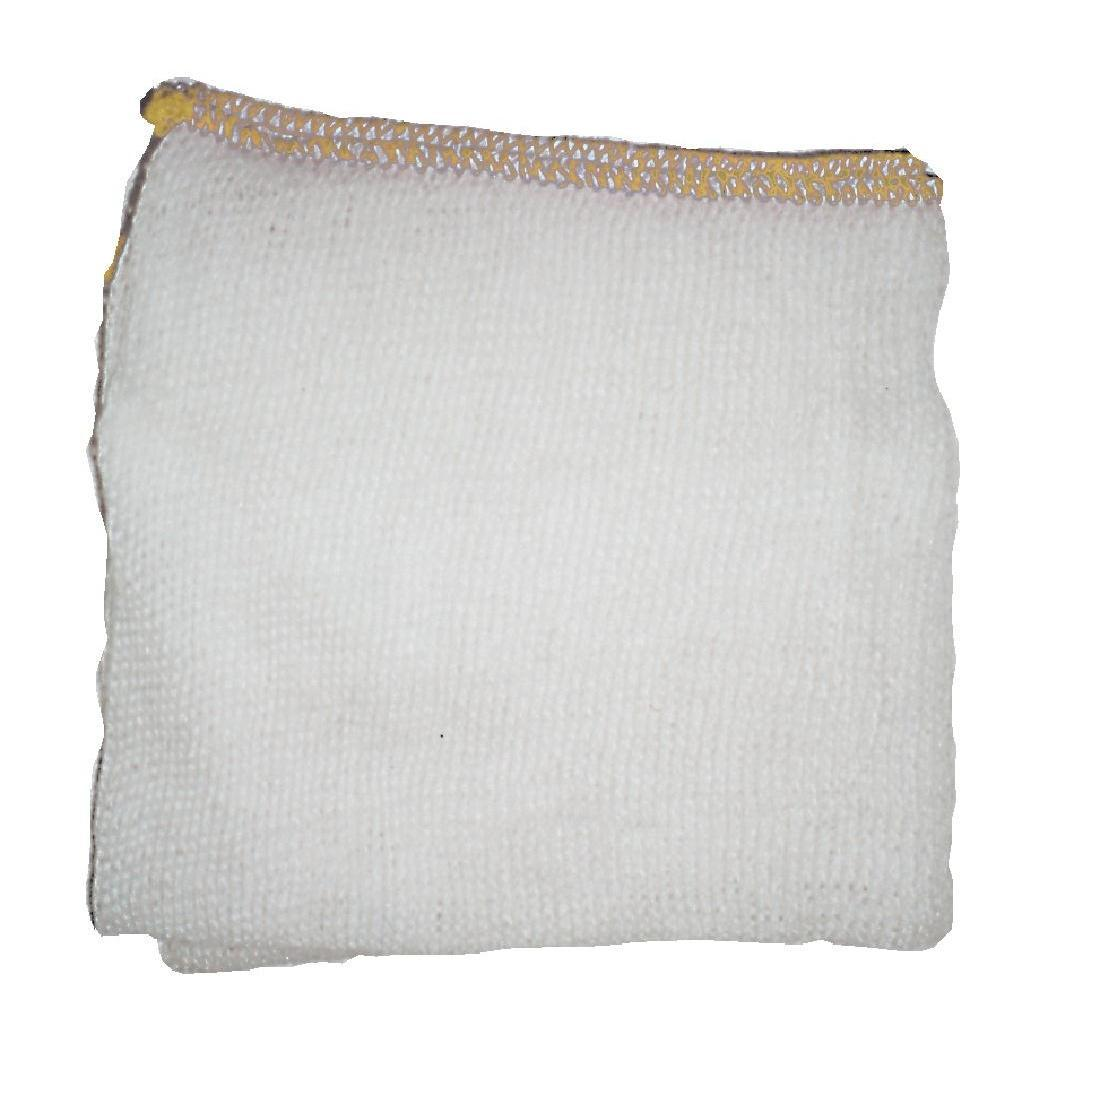 Jantex Dish Cloths Yellow